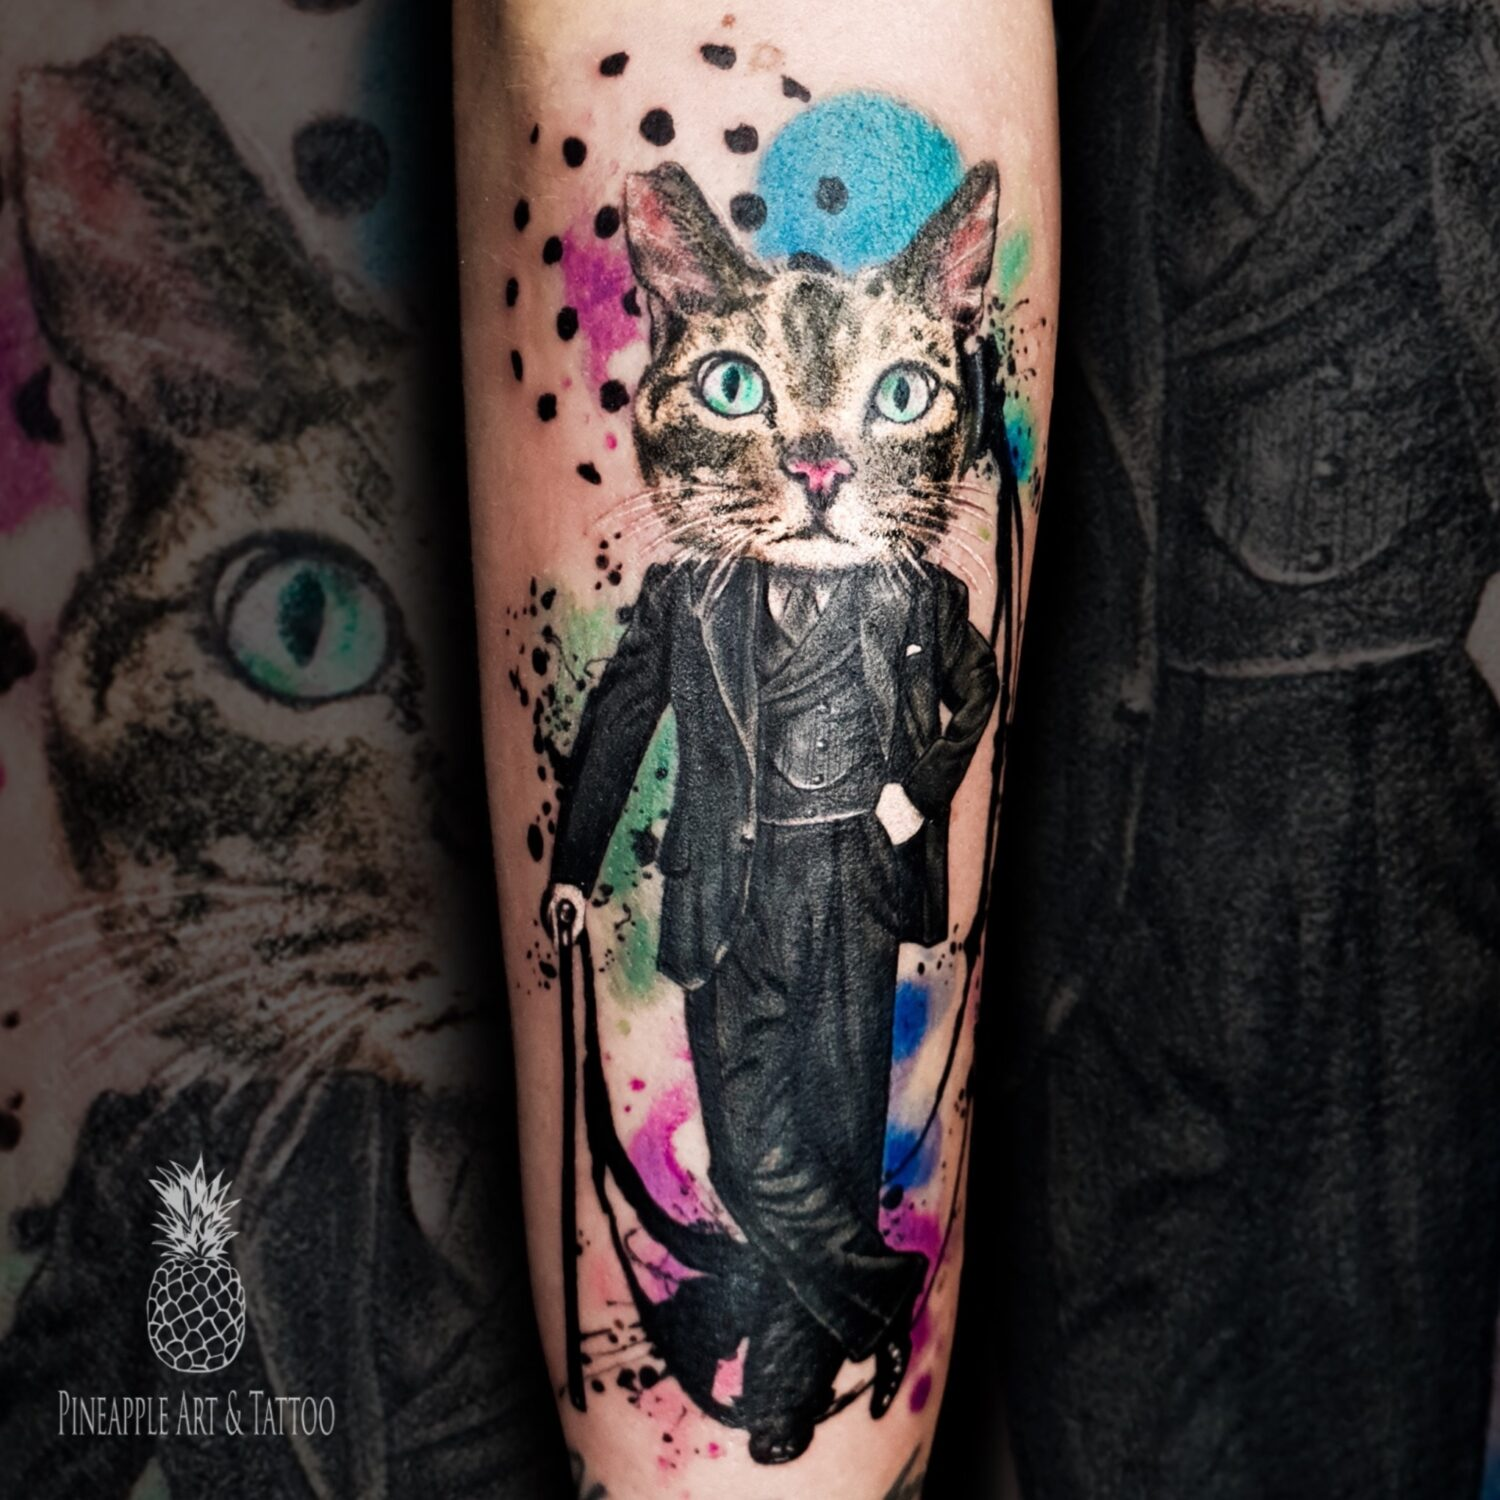 The gentleman colorful cat tattoo